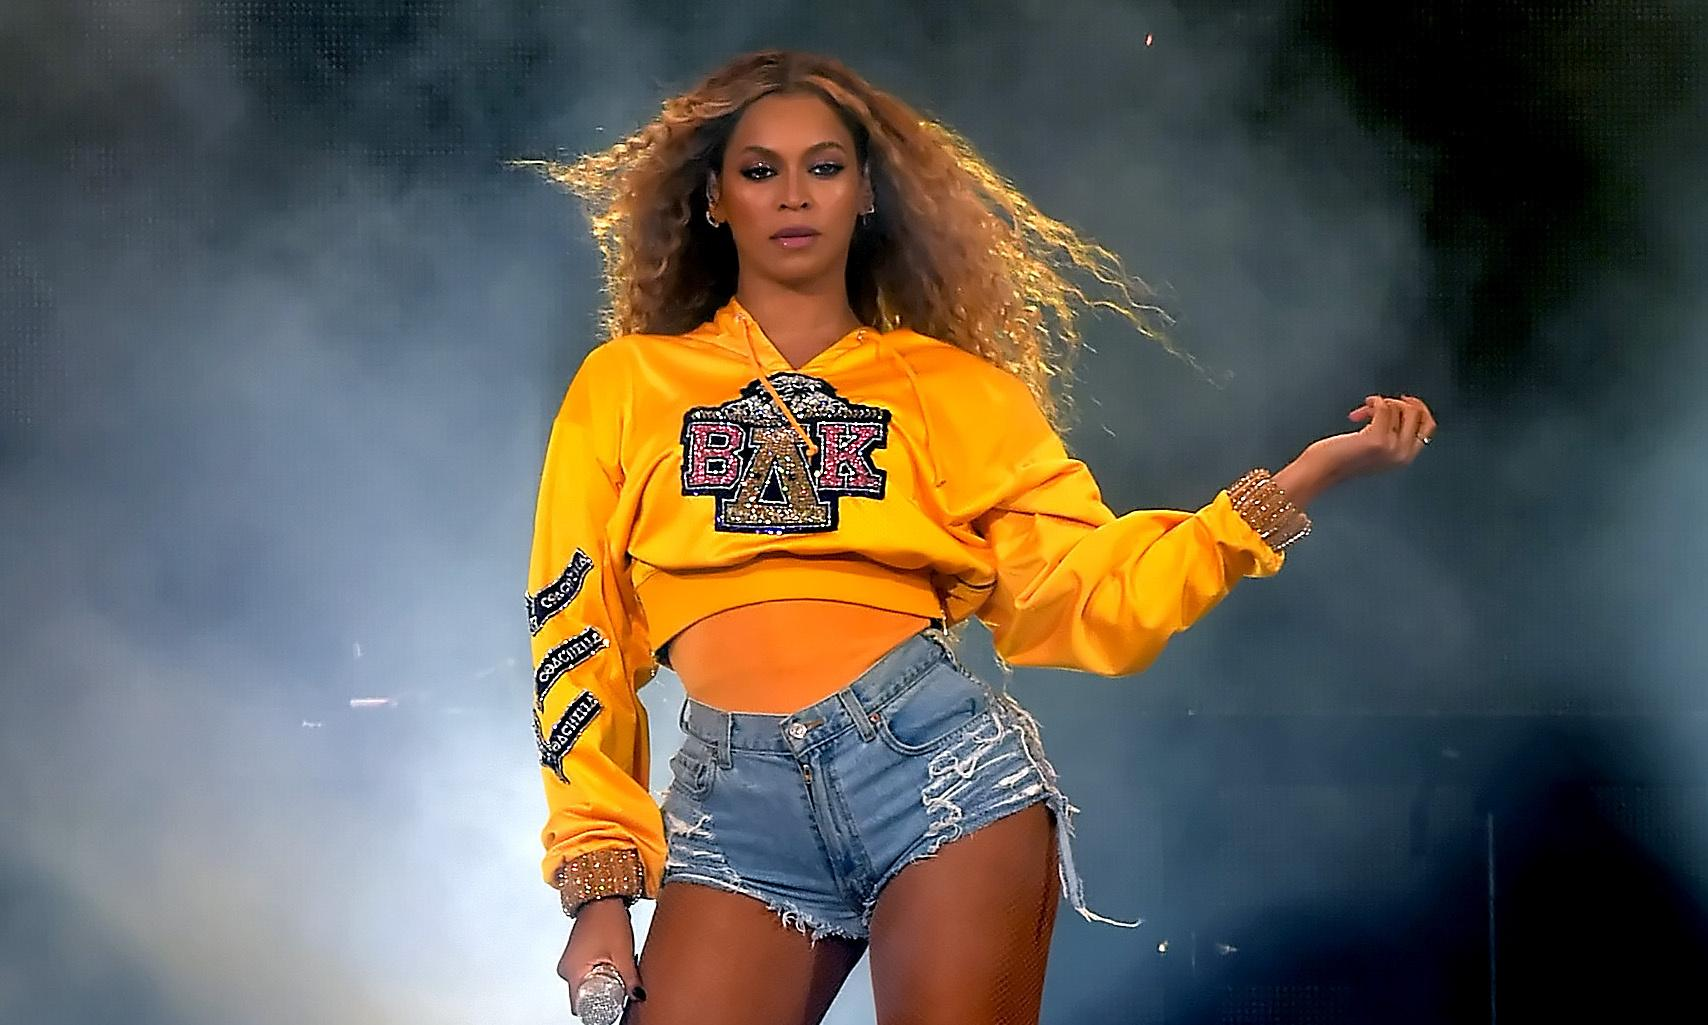 If even Beyoncé had a rough pregnancy, what hope do other black women have?